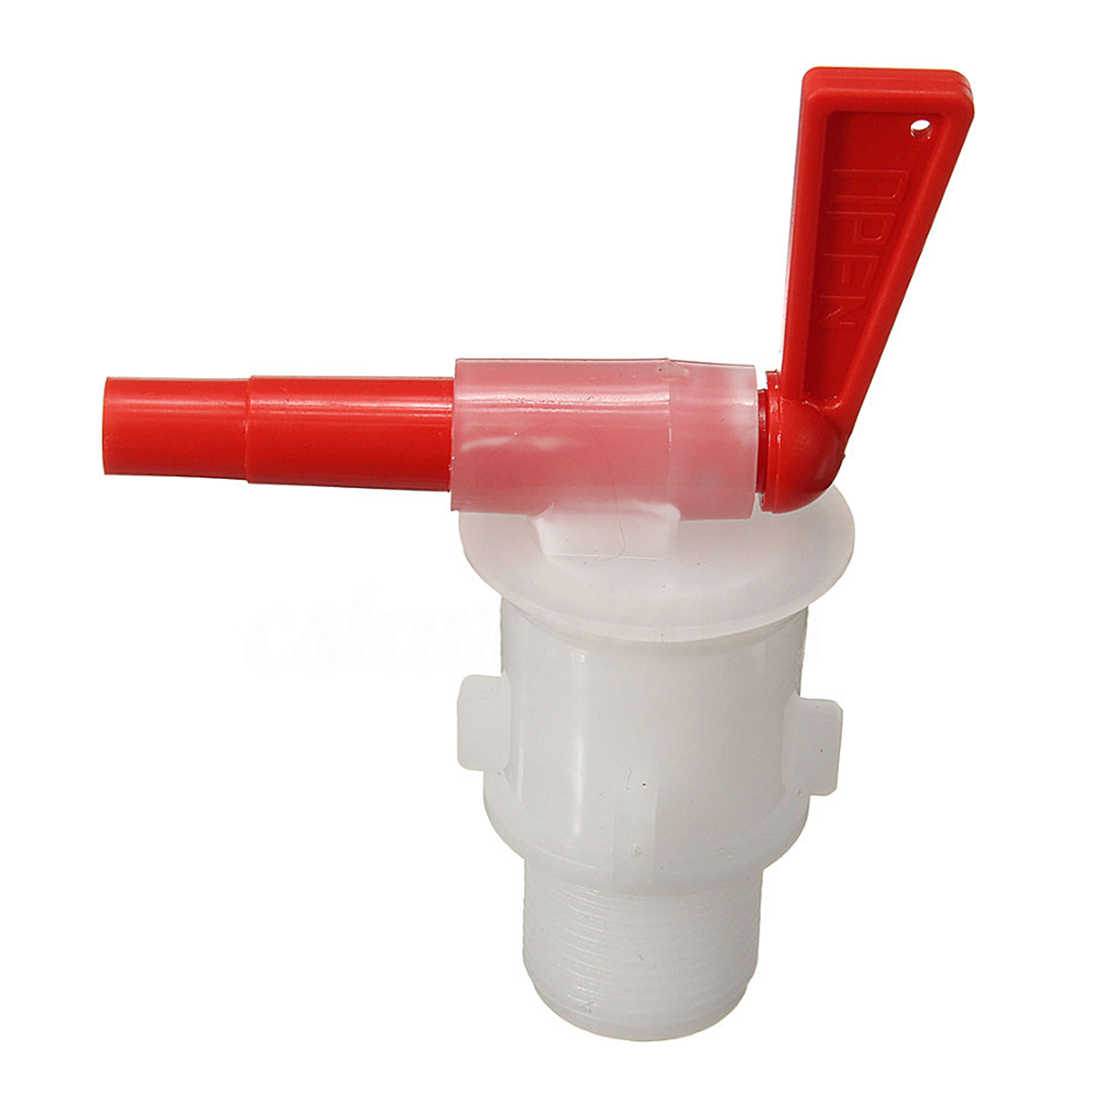 NEW-DIY Wine Beer Bottling Homebrew Bucket Barrel Plastic Spigot Tap Replacement